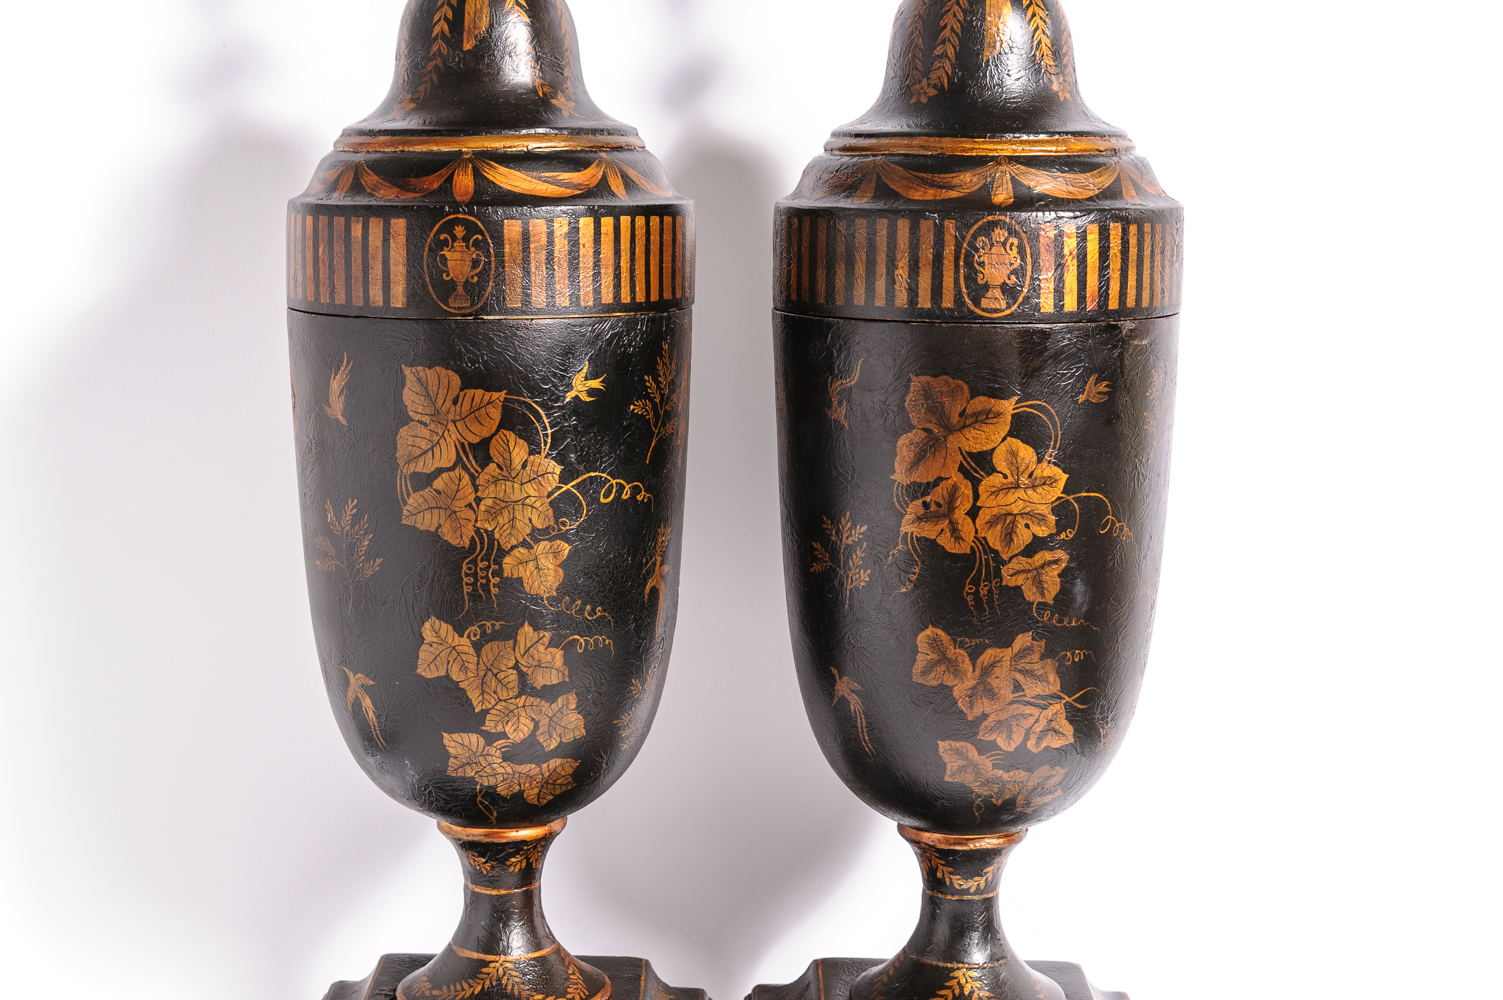 Pair Of Urns On Antique Row West Palm Beach Florida